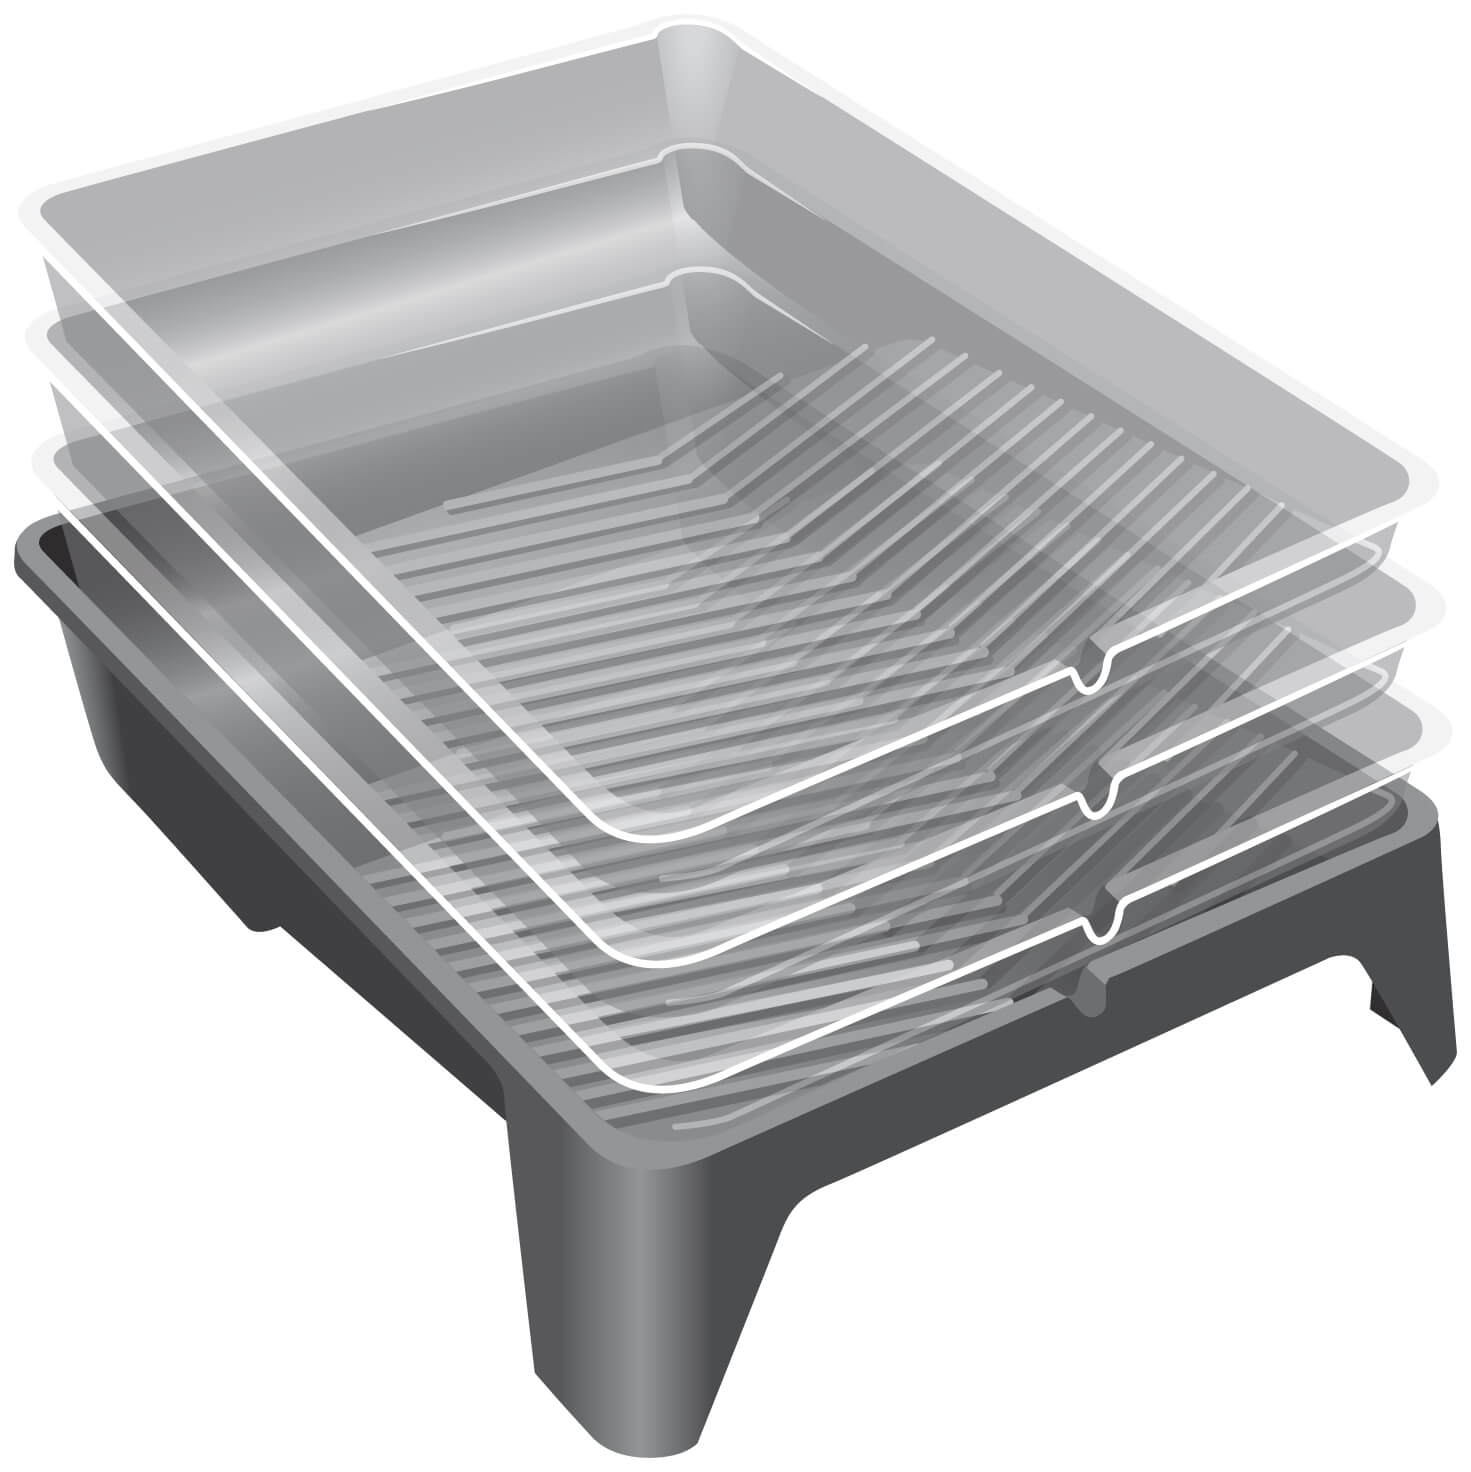 UNi-PRO 270mm Disposable Paint Tray Liners - 100 Pack